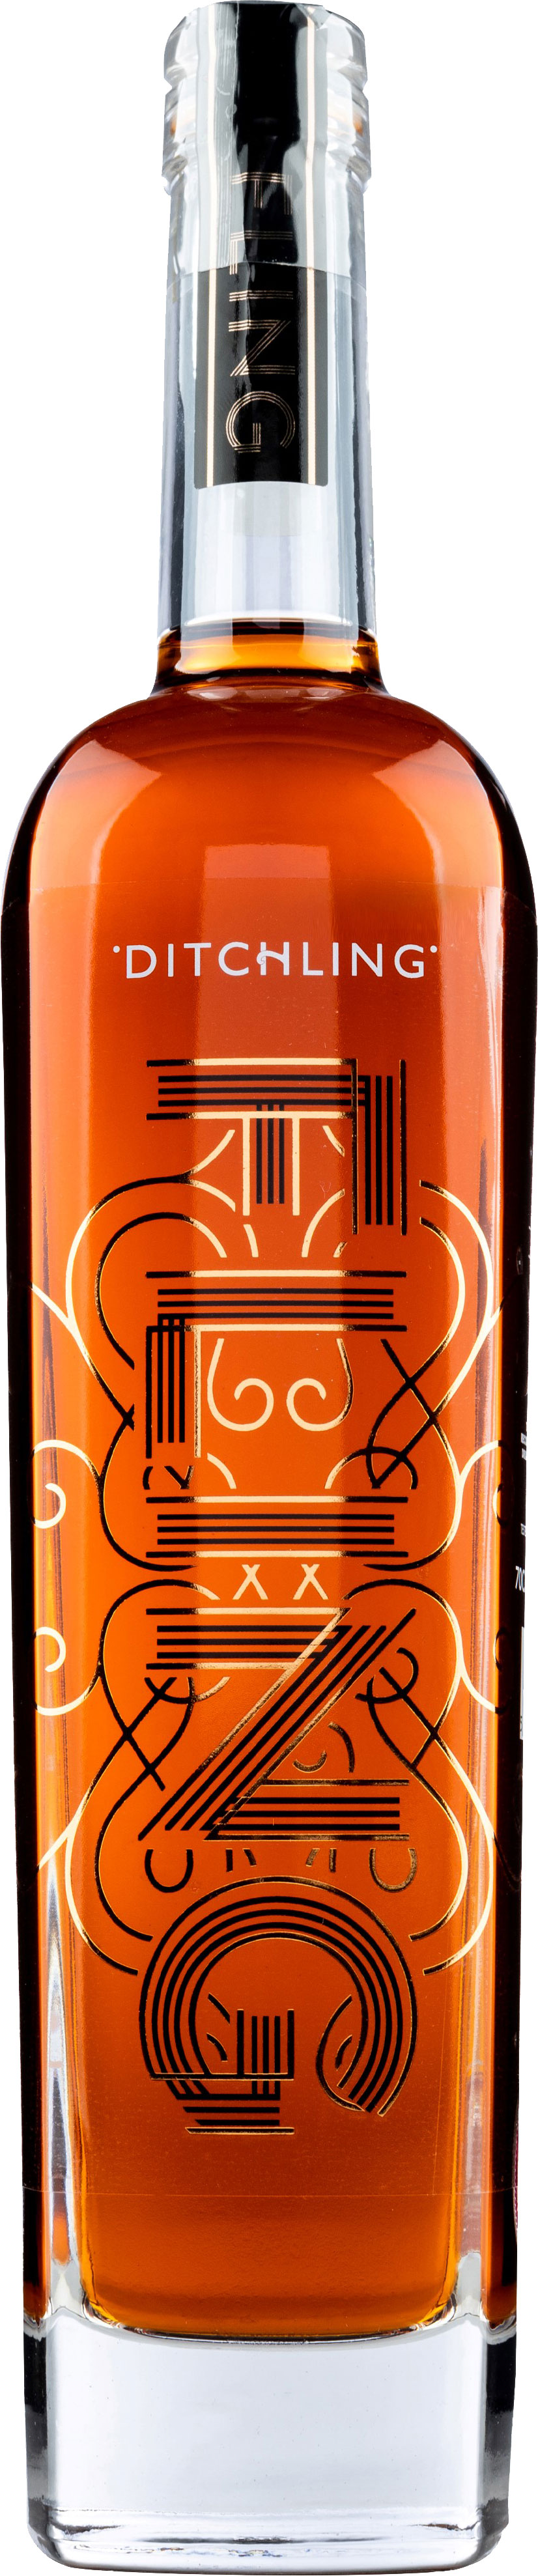 Ditchling - Fling Toffee Vodka 70cl Bottle